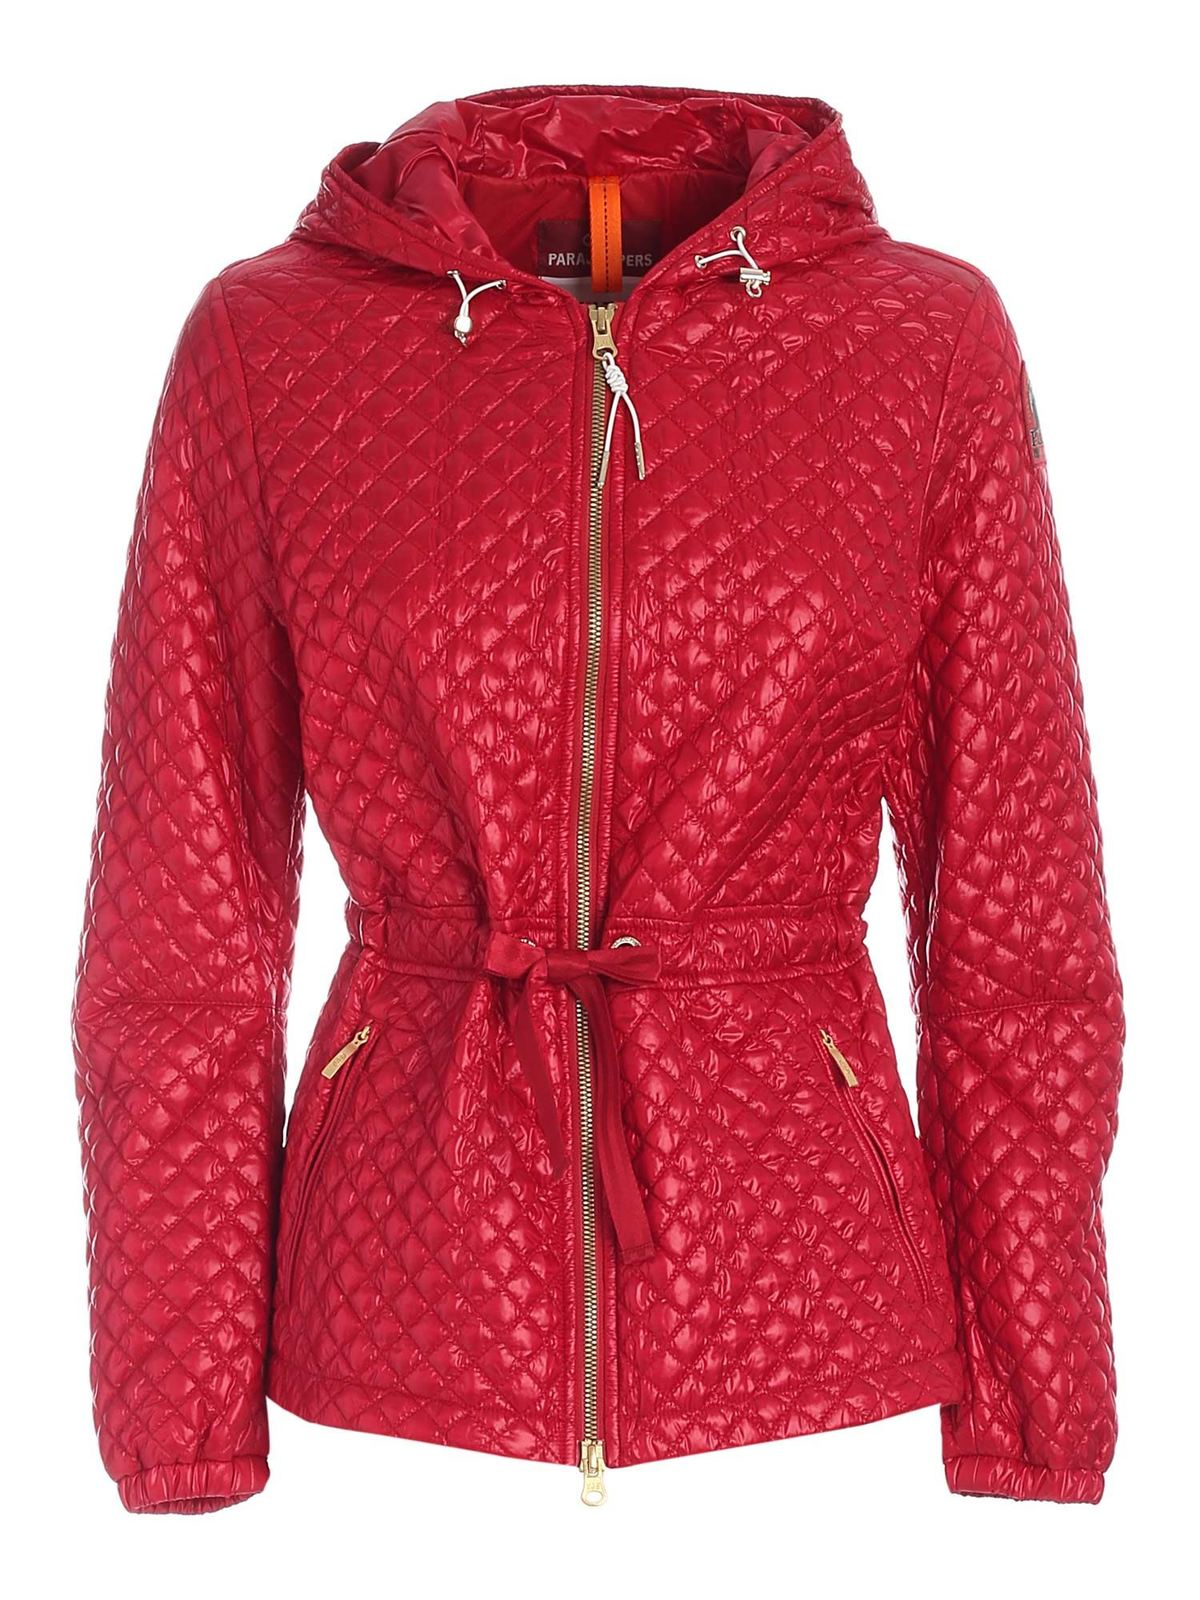 Parajumpers Jackets LILLY PUFFER JACKET IN RED